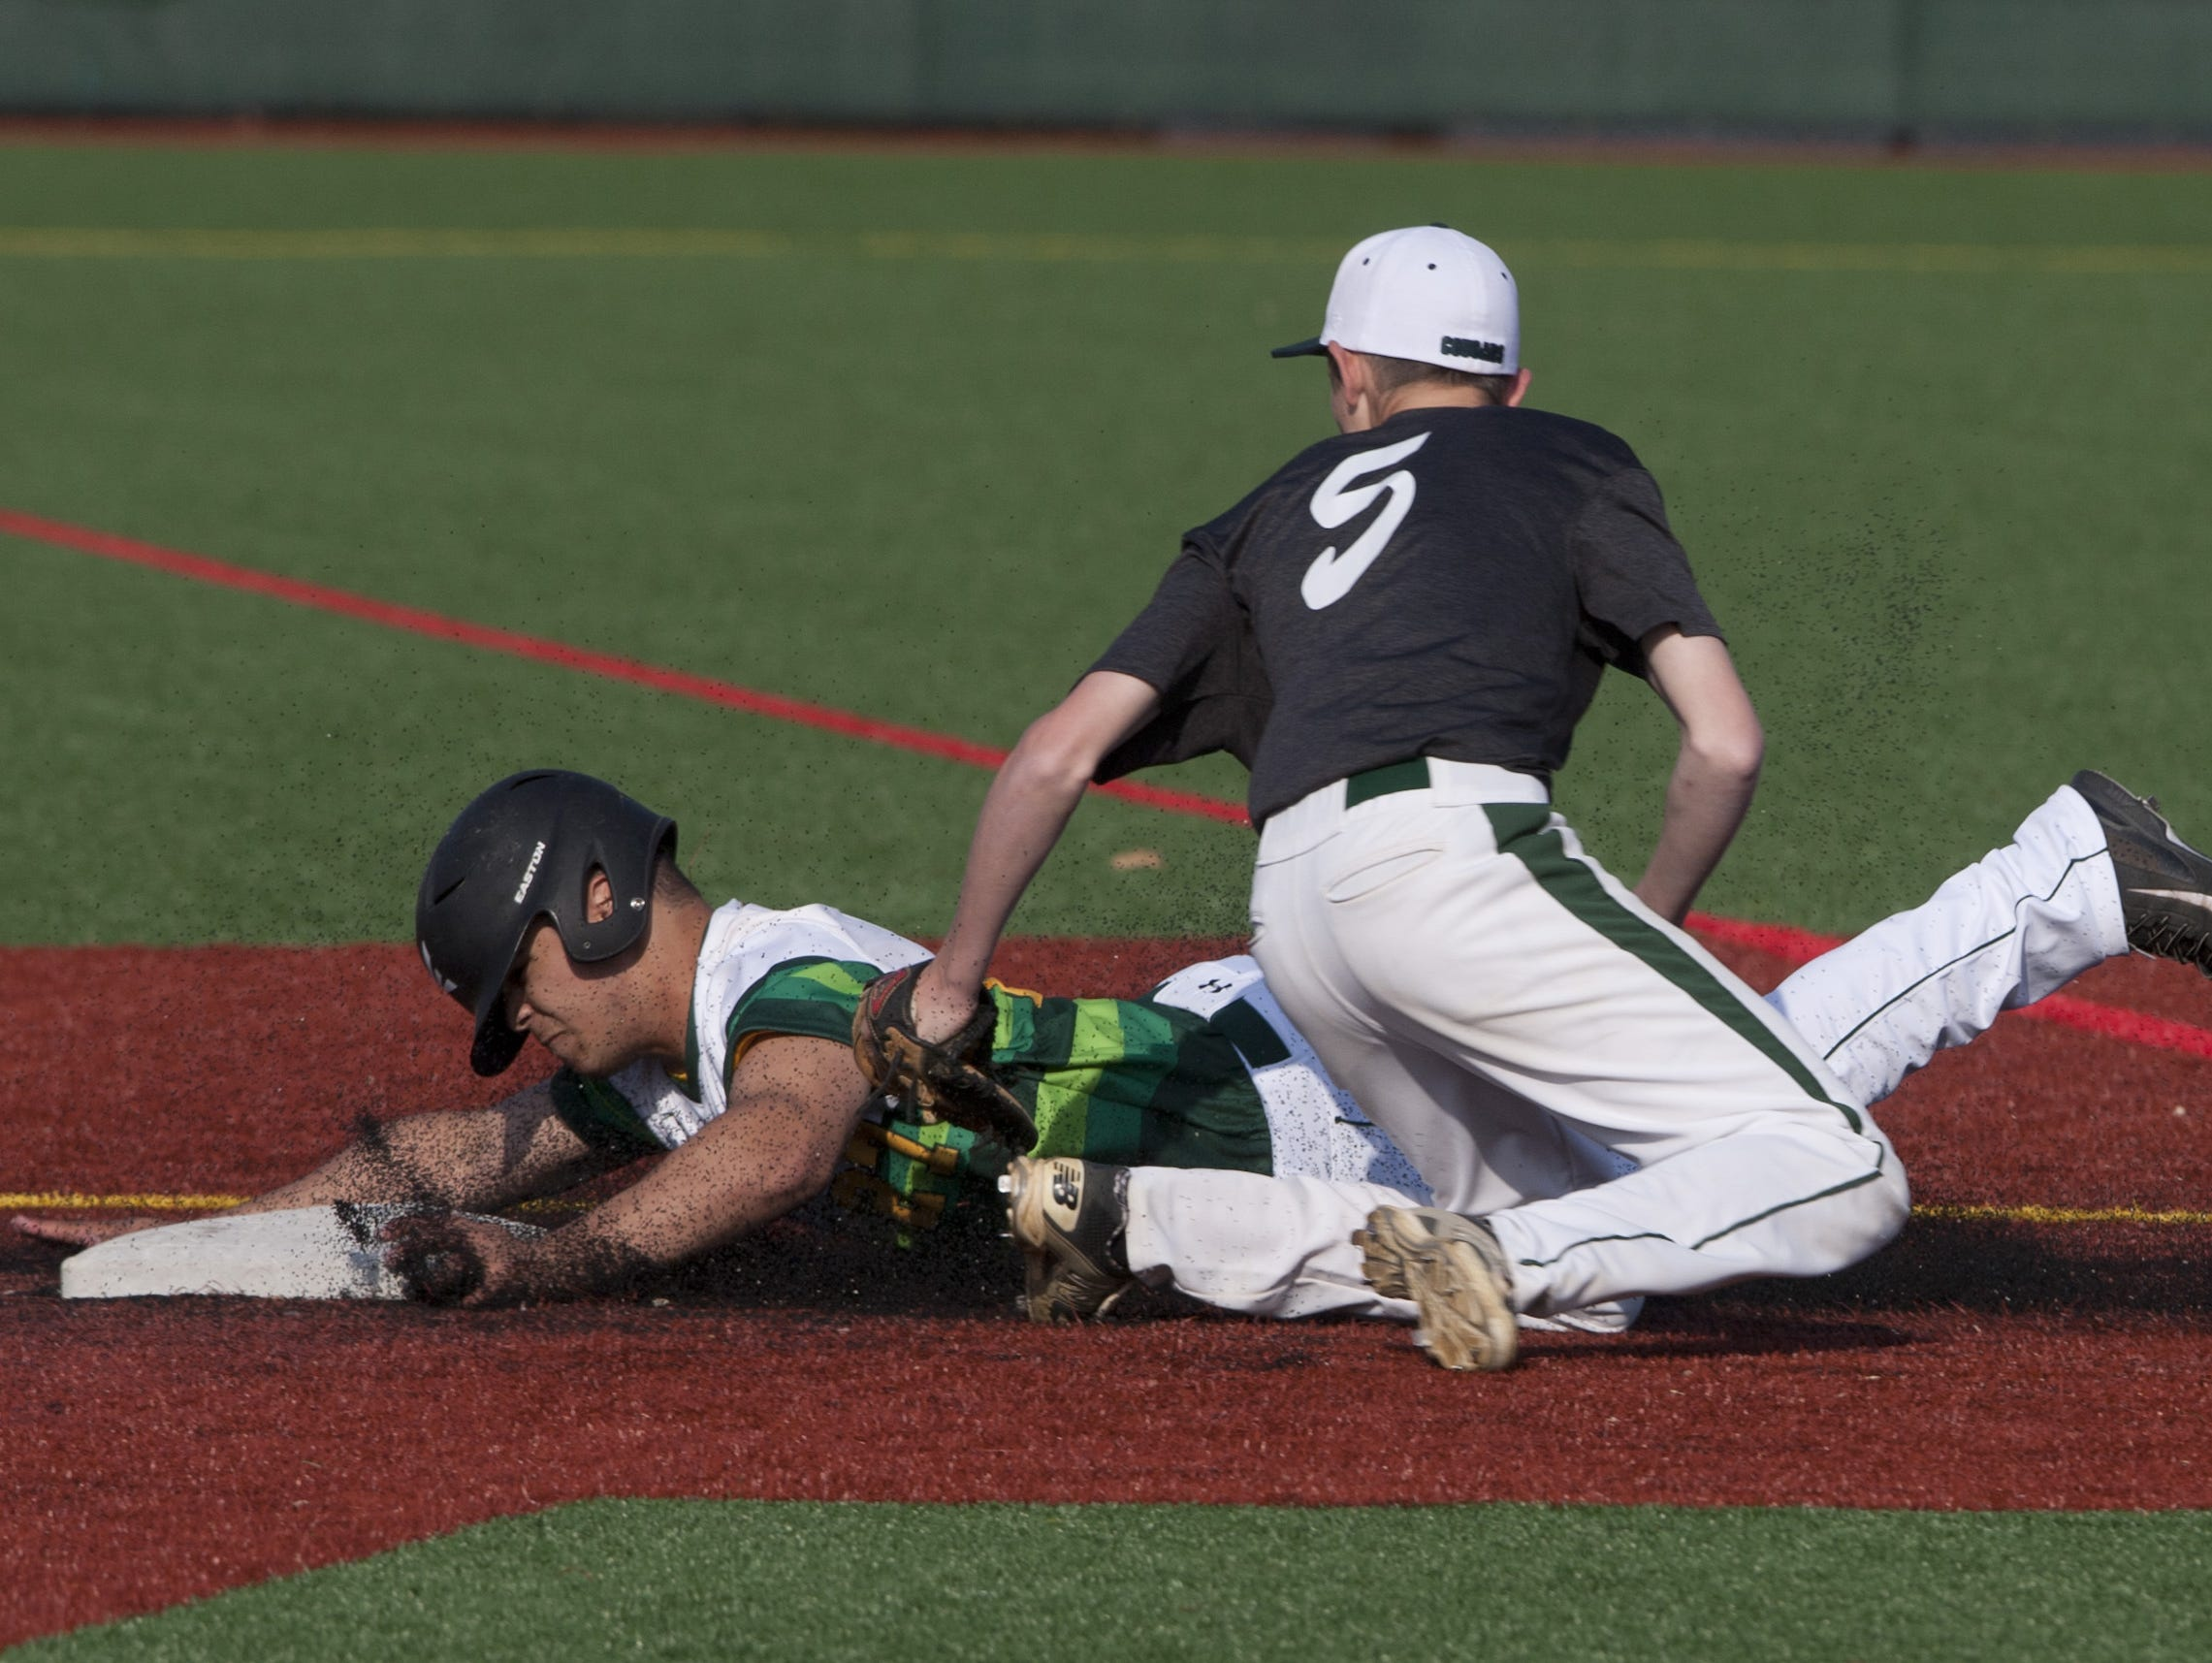 Colts Neck's Tim Cavrak puts the tag on Red Bank Catholic's Dom Caraballo trying to steal second in the fourth inning.